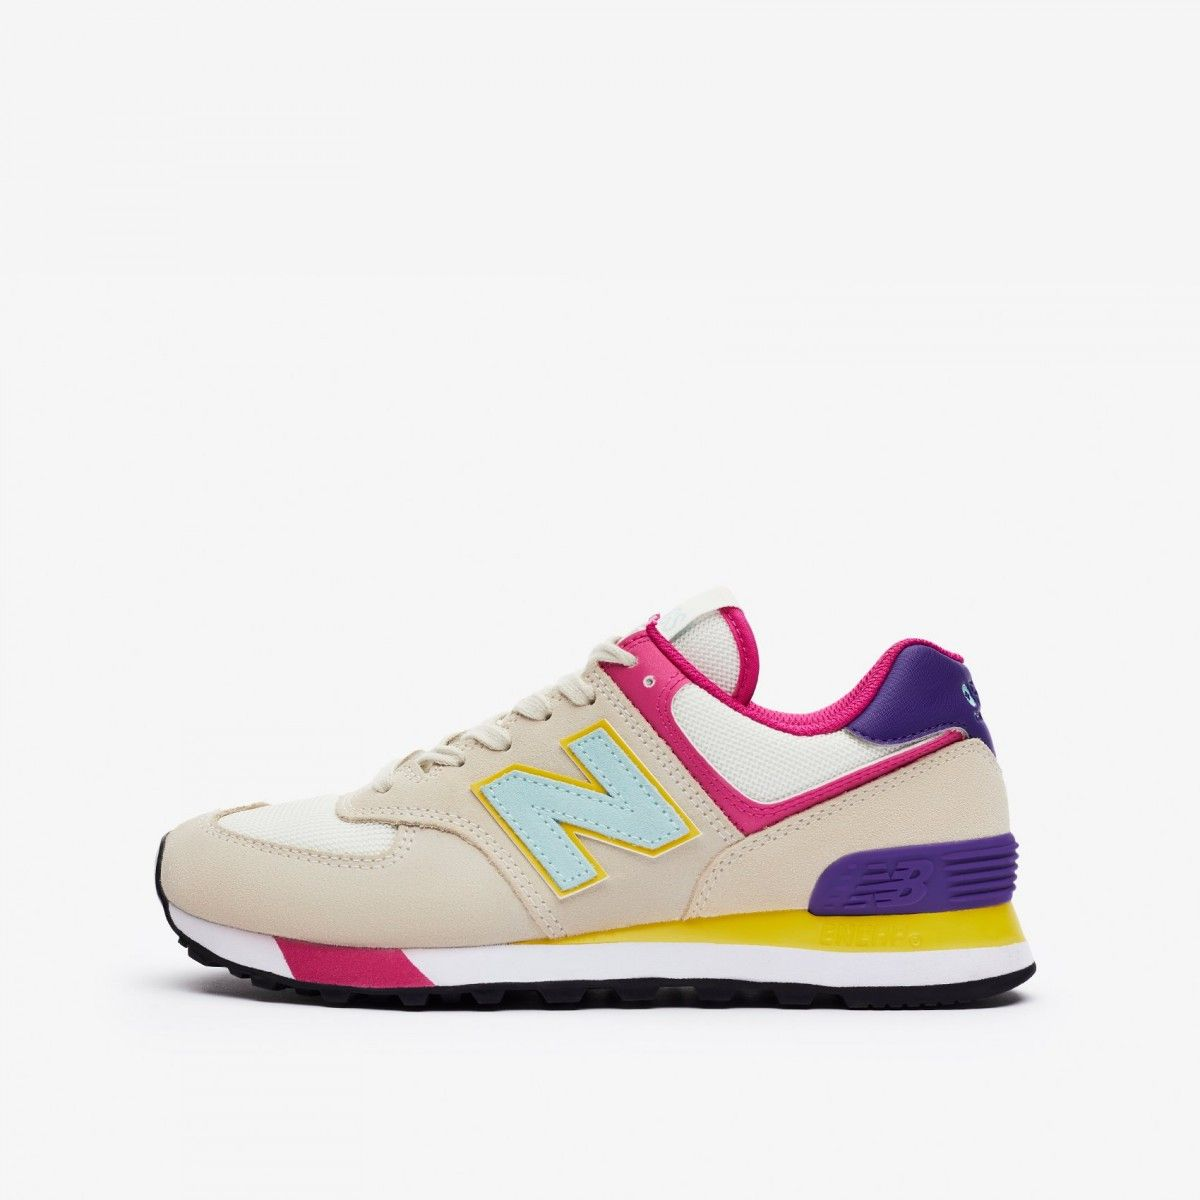 FIGS | New Balance 574 - Women's Shoes in 2021 | New balance 574 ...